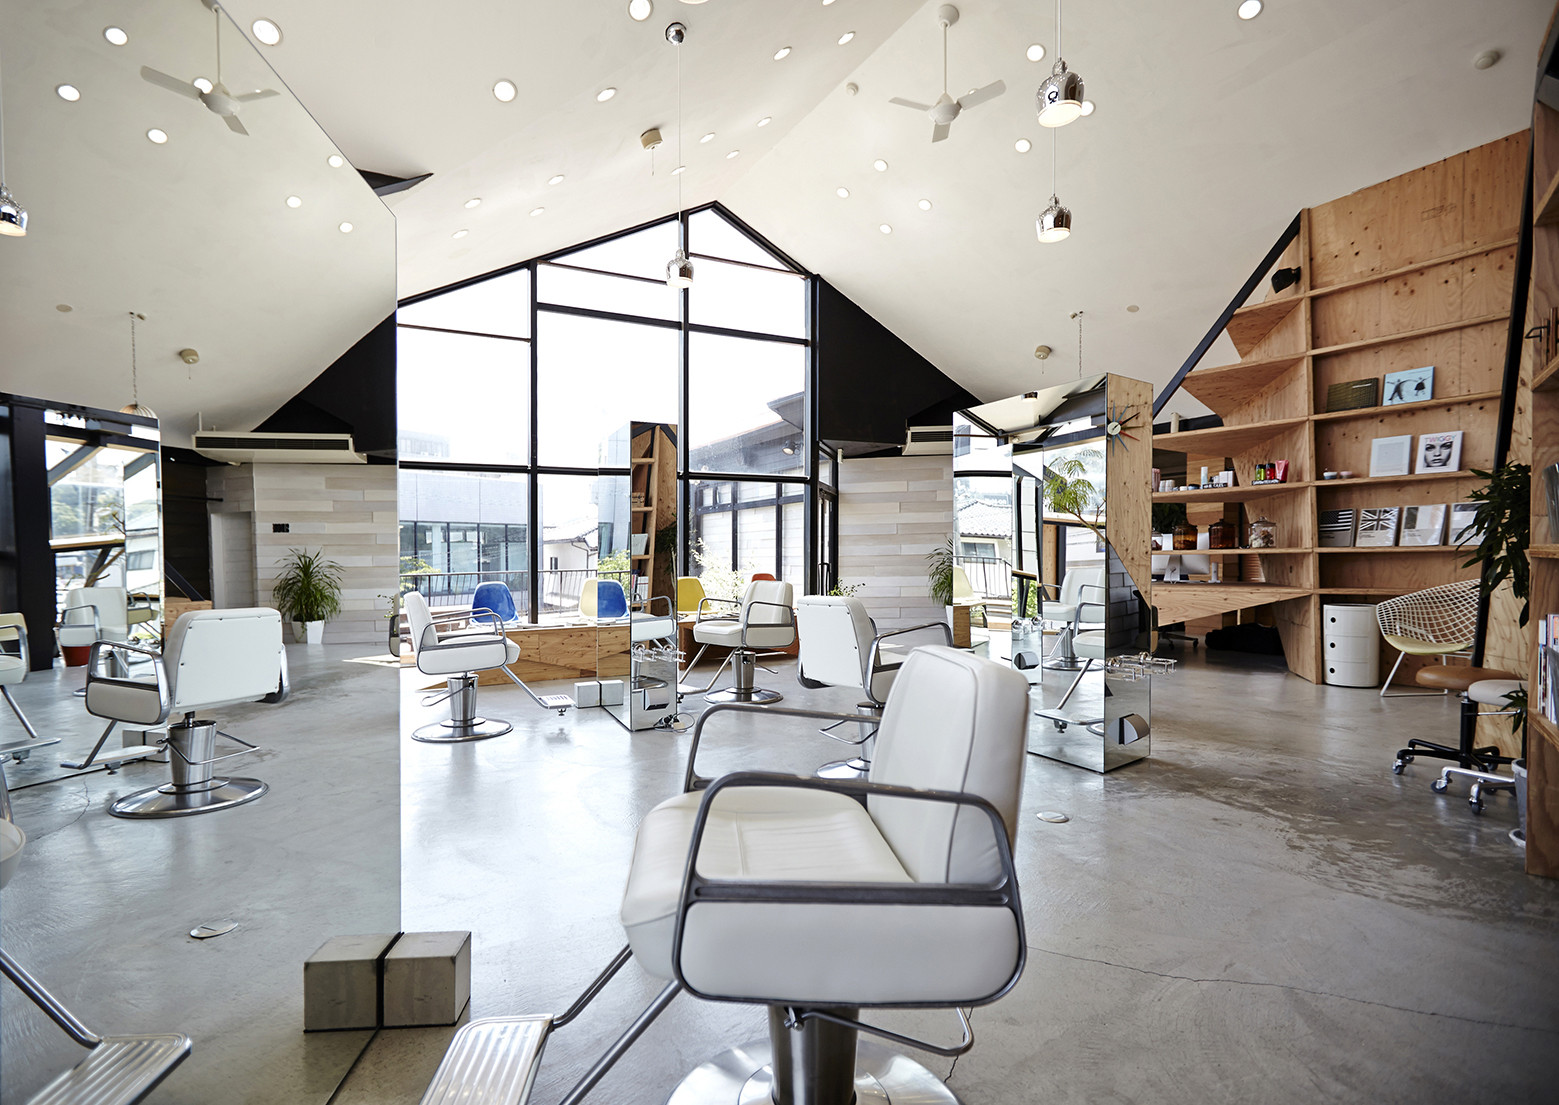 Salon Architecture Hair Salon Slundre Bhis Archdaily